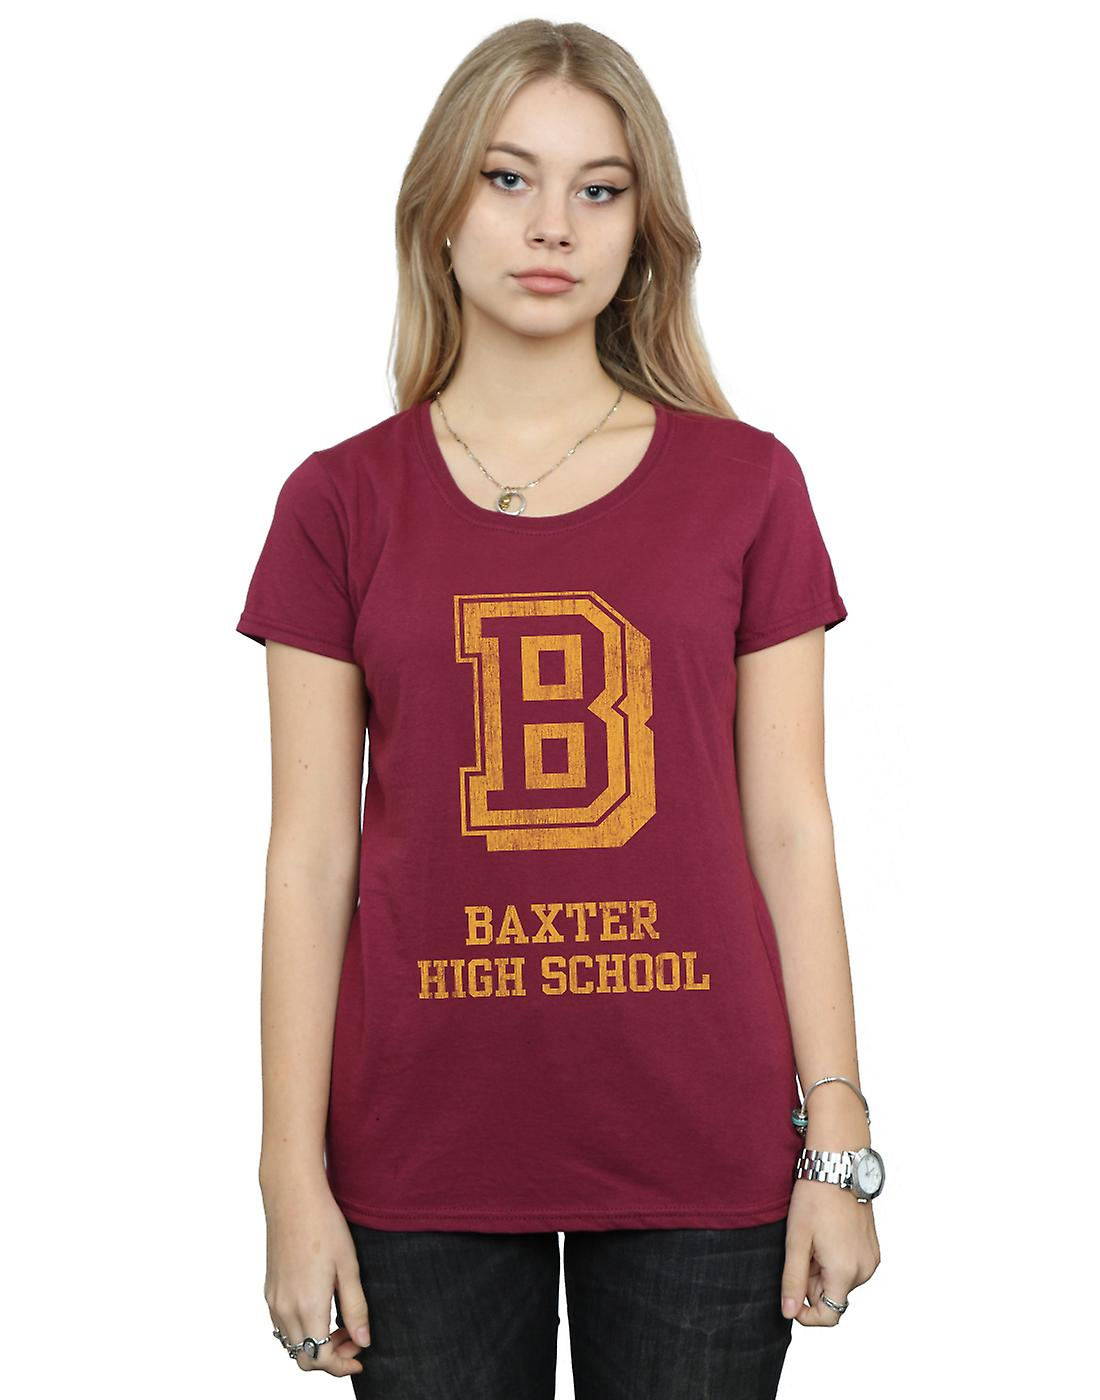 The Chilling Adventures Of Sabrina Women's Baxter High School T-Shirt